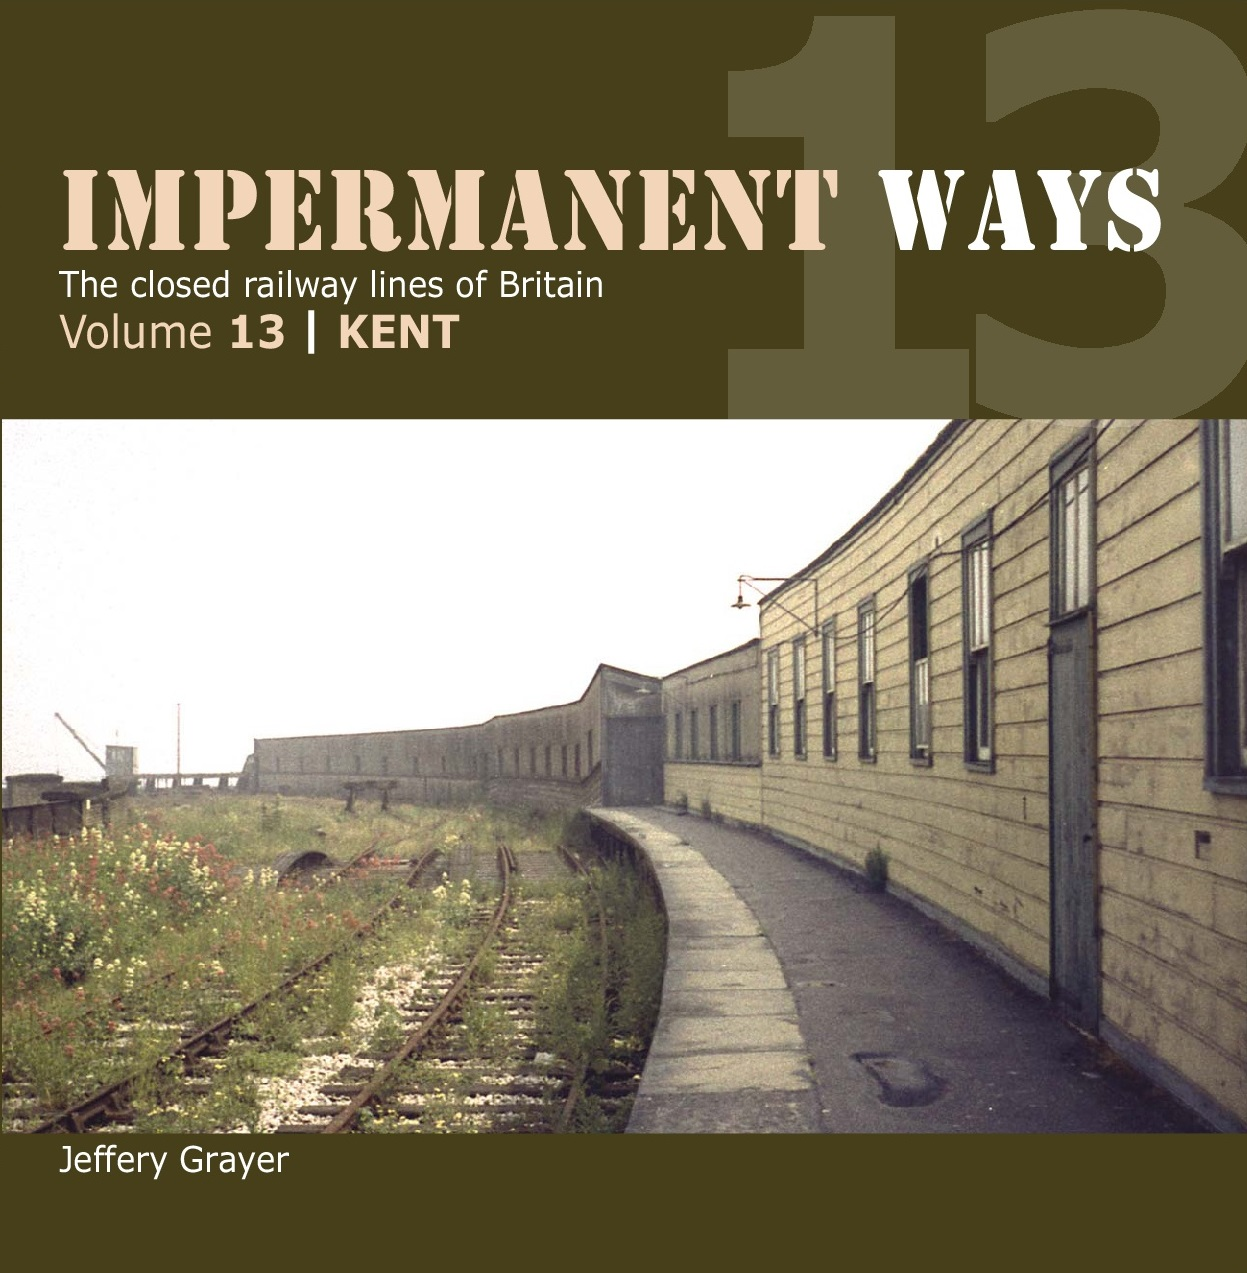 Impermanent Ways Volume 13